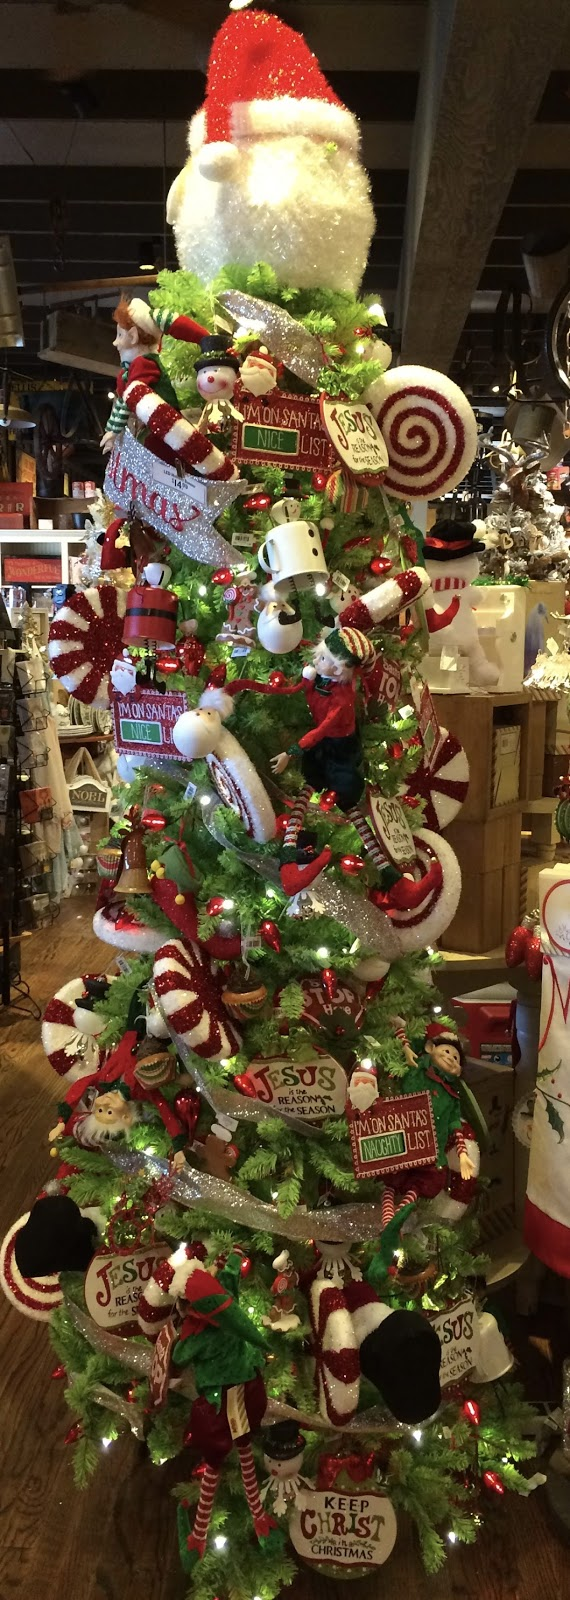 Cracker Barrel Christmas.Nanaland Cracker Barrel Christmas